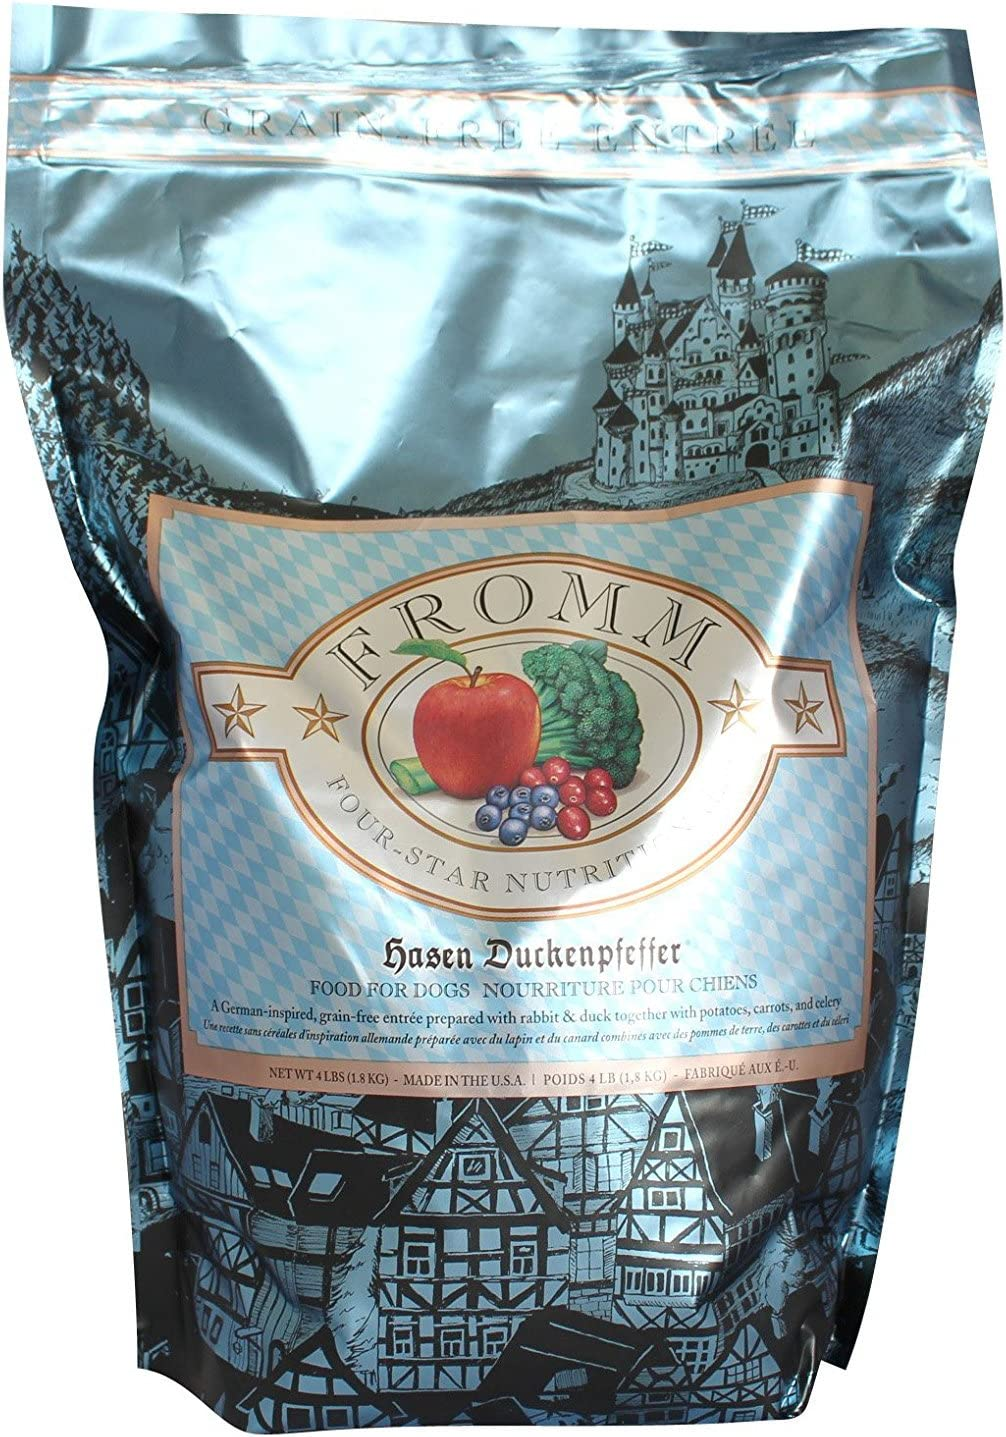 Fromm Hasen Duckenpfeffer for Dogs, 4 pounds